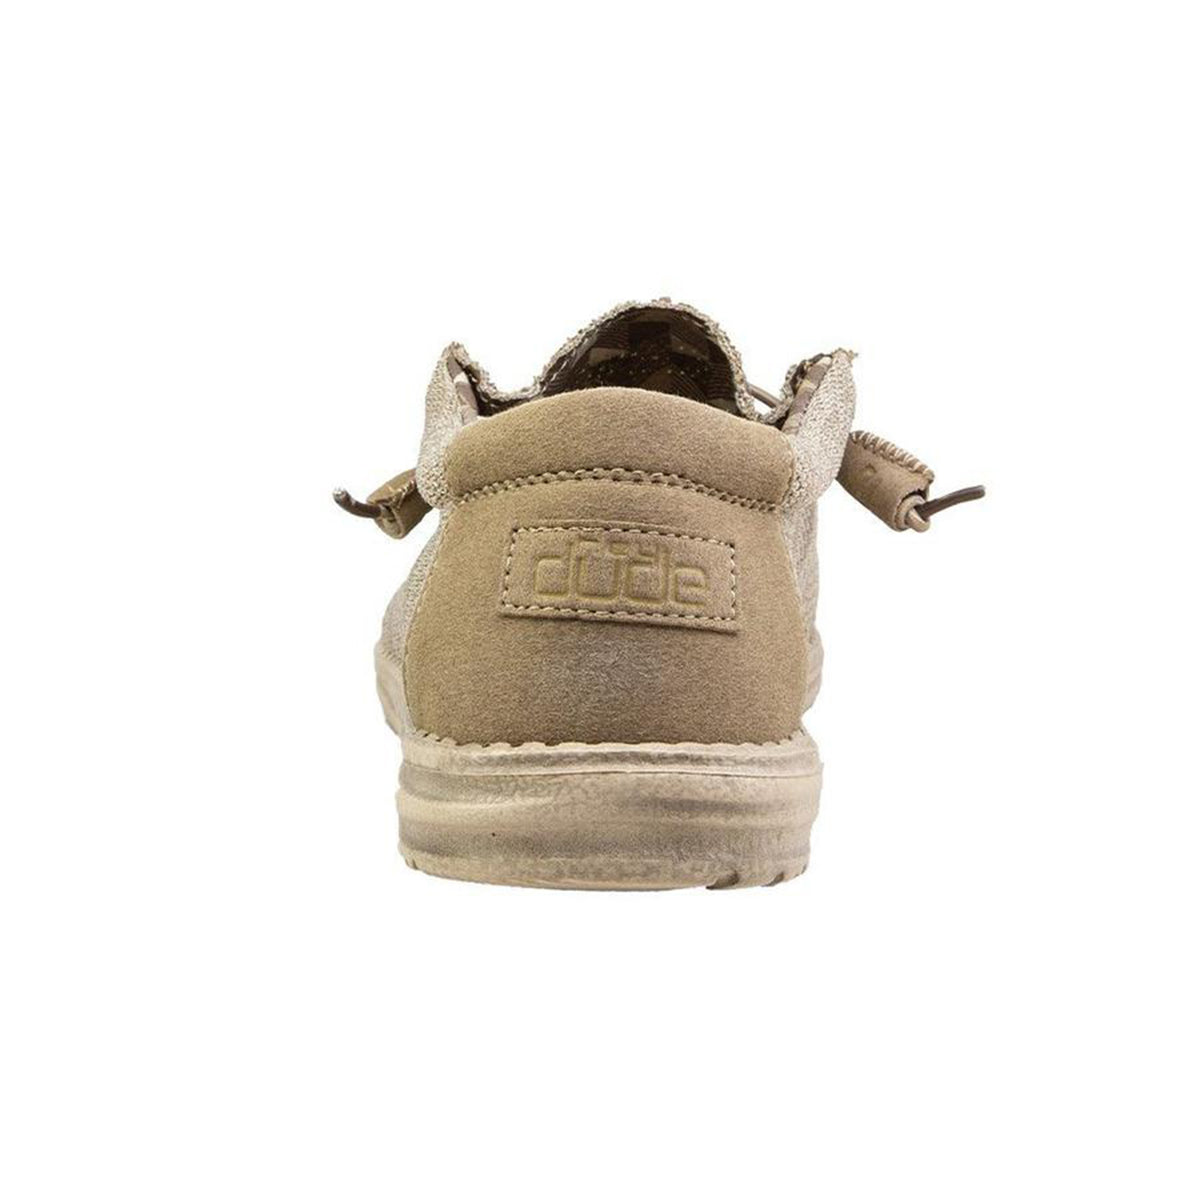 Men's Wally Sox in Beige